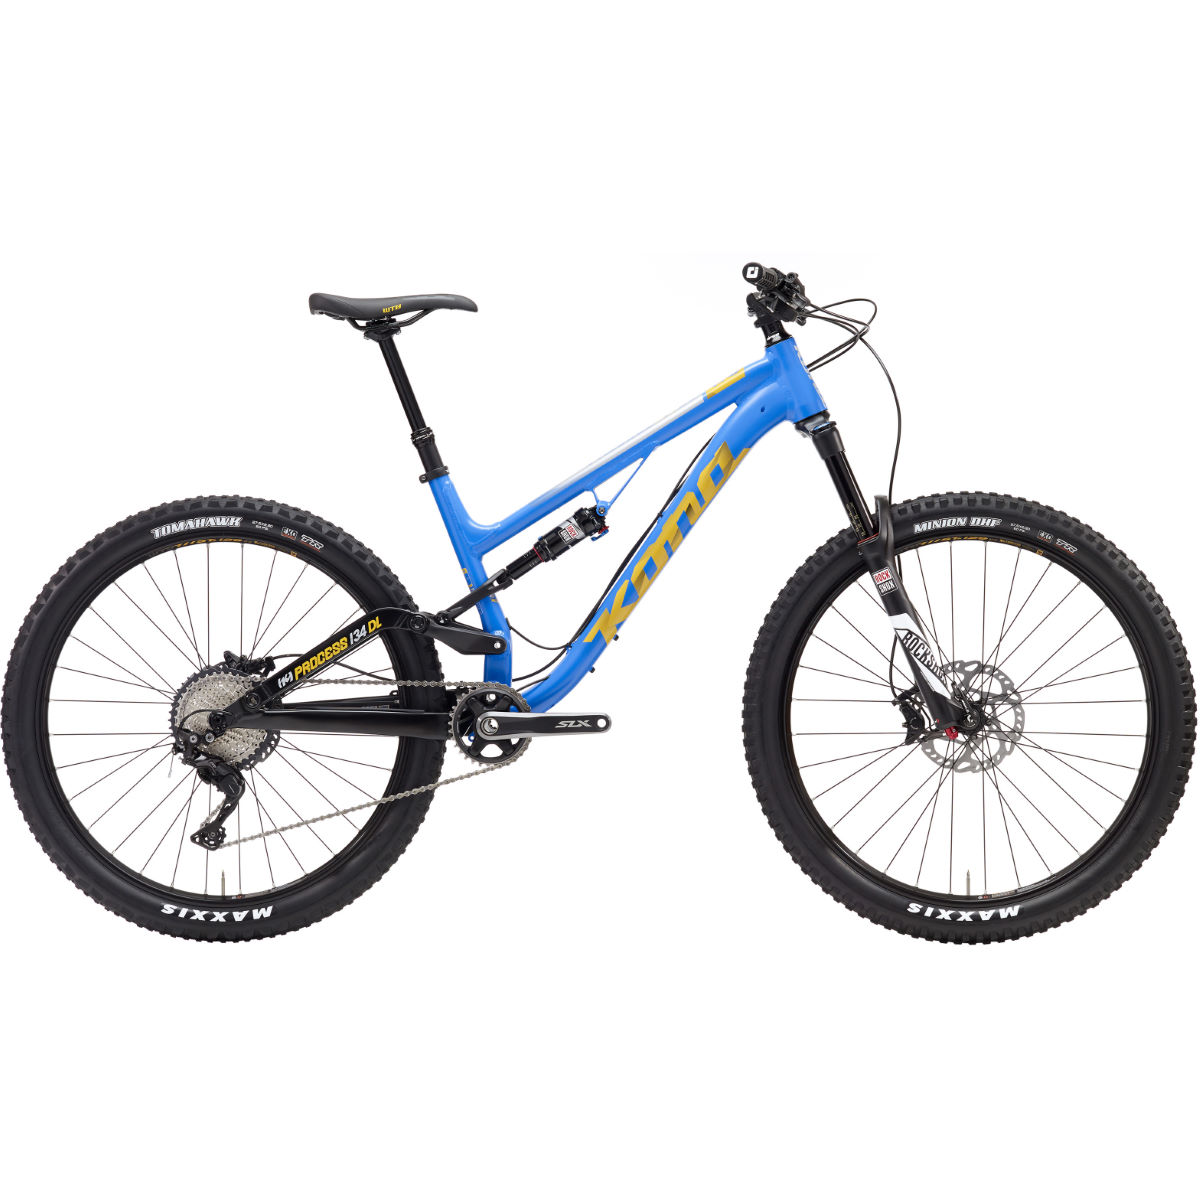 VTT Kona Process 134 DL (2017) - X Small Stock Bike Bleu